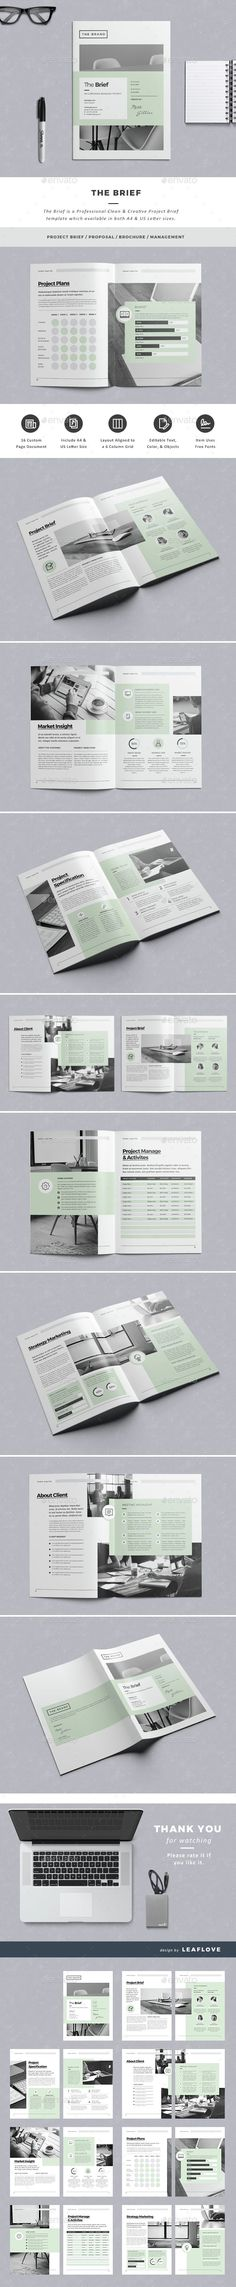 Patterns The Brief — InDesign Template #resume #template #2017